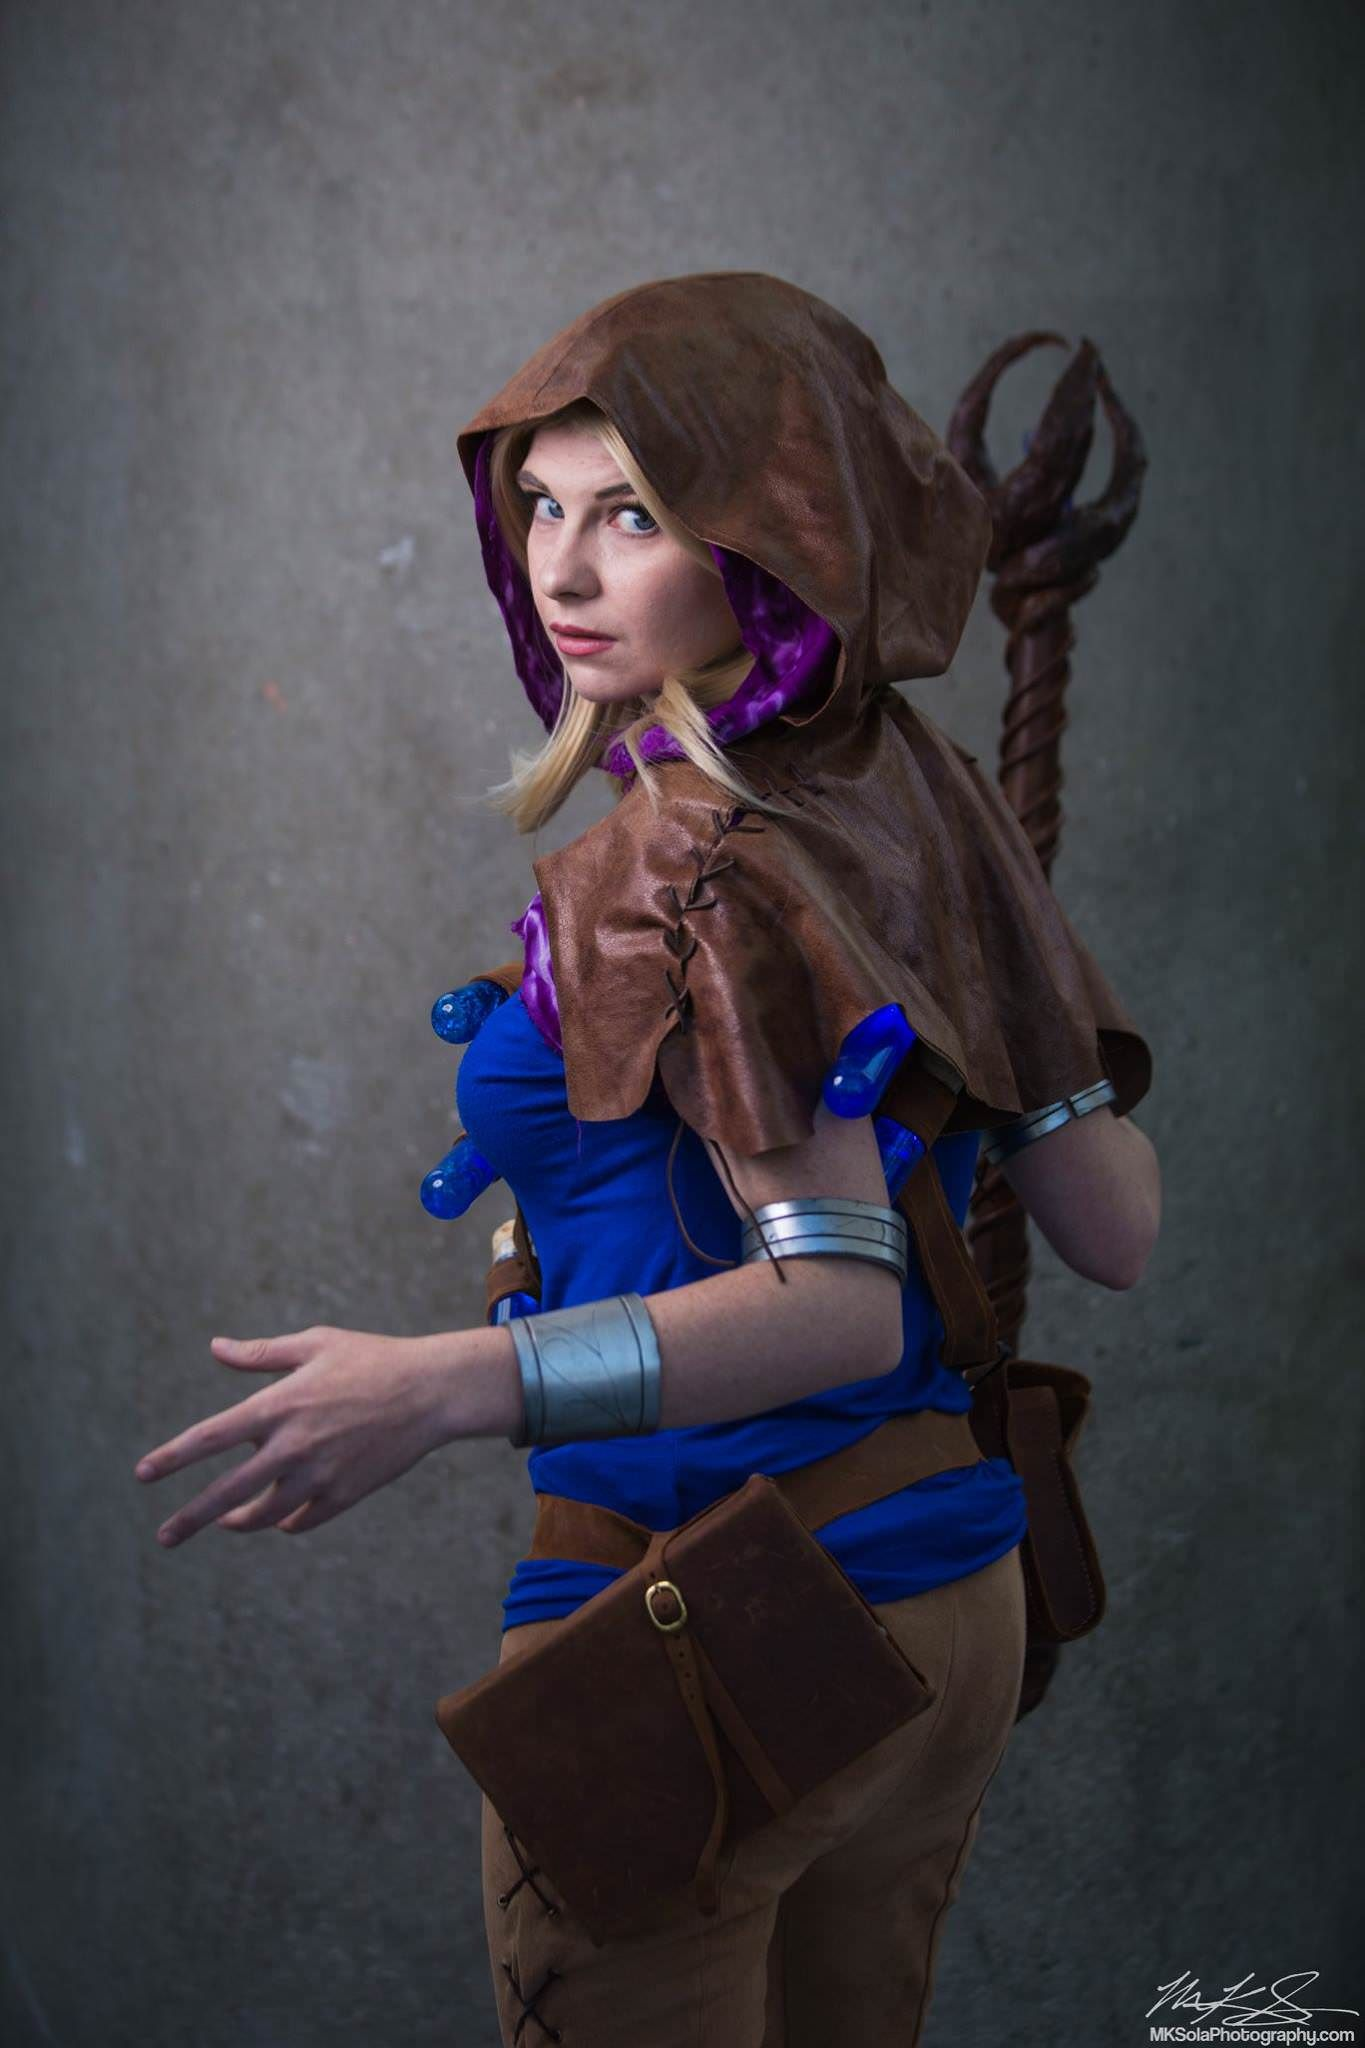 Spellthief Lux Lol Wallpapers Lol League Of Legends Champions League Of Legends League Of Legends Characters